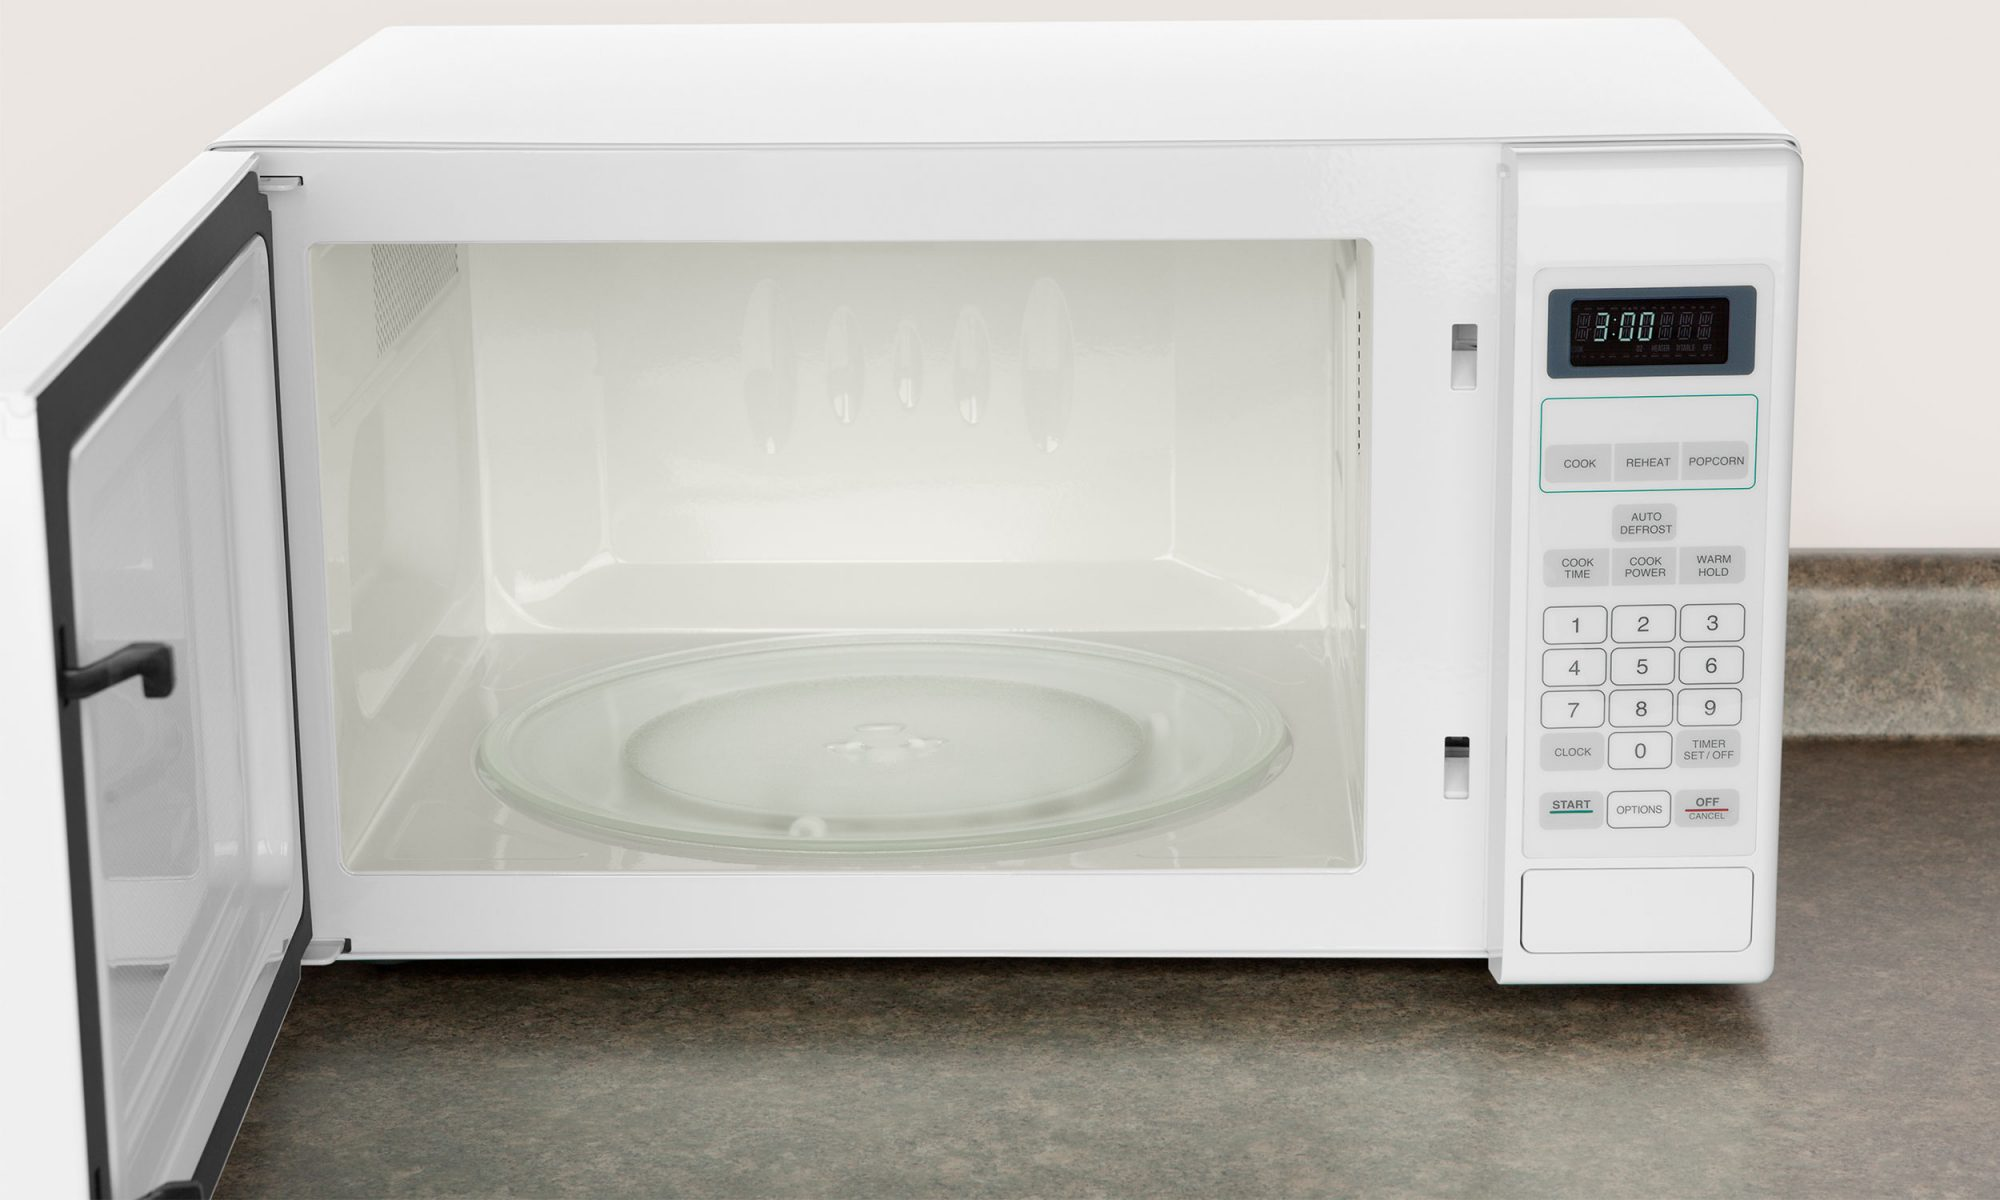 EC: Food Will Taste Better if You Clean Your Microwave